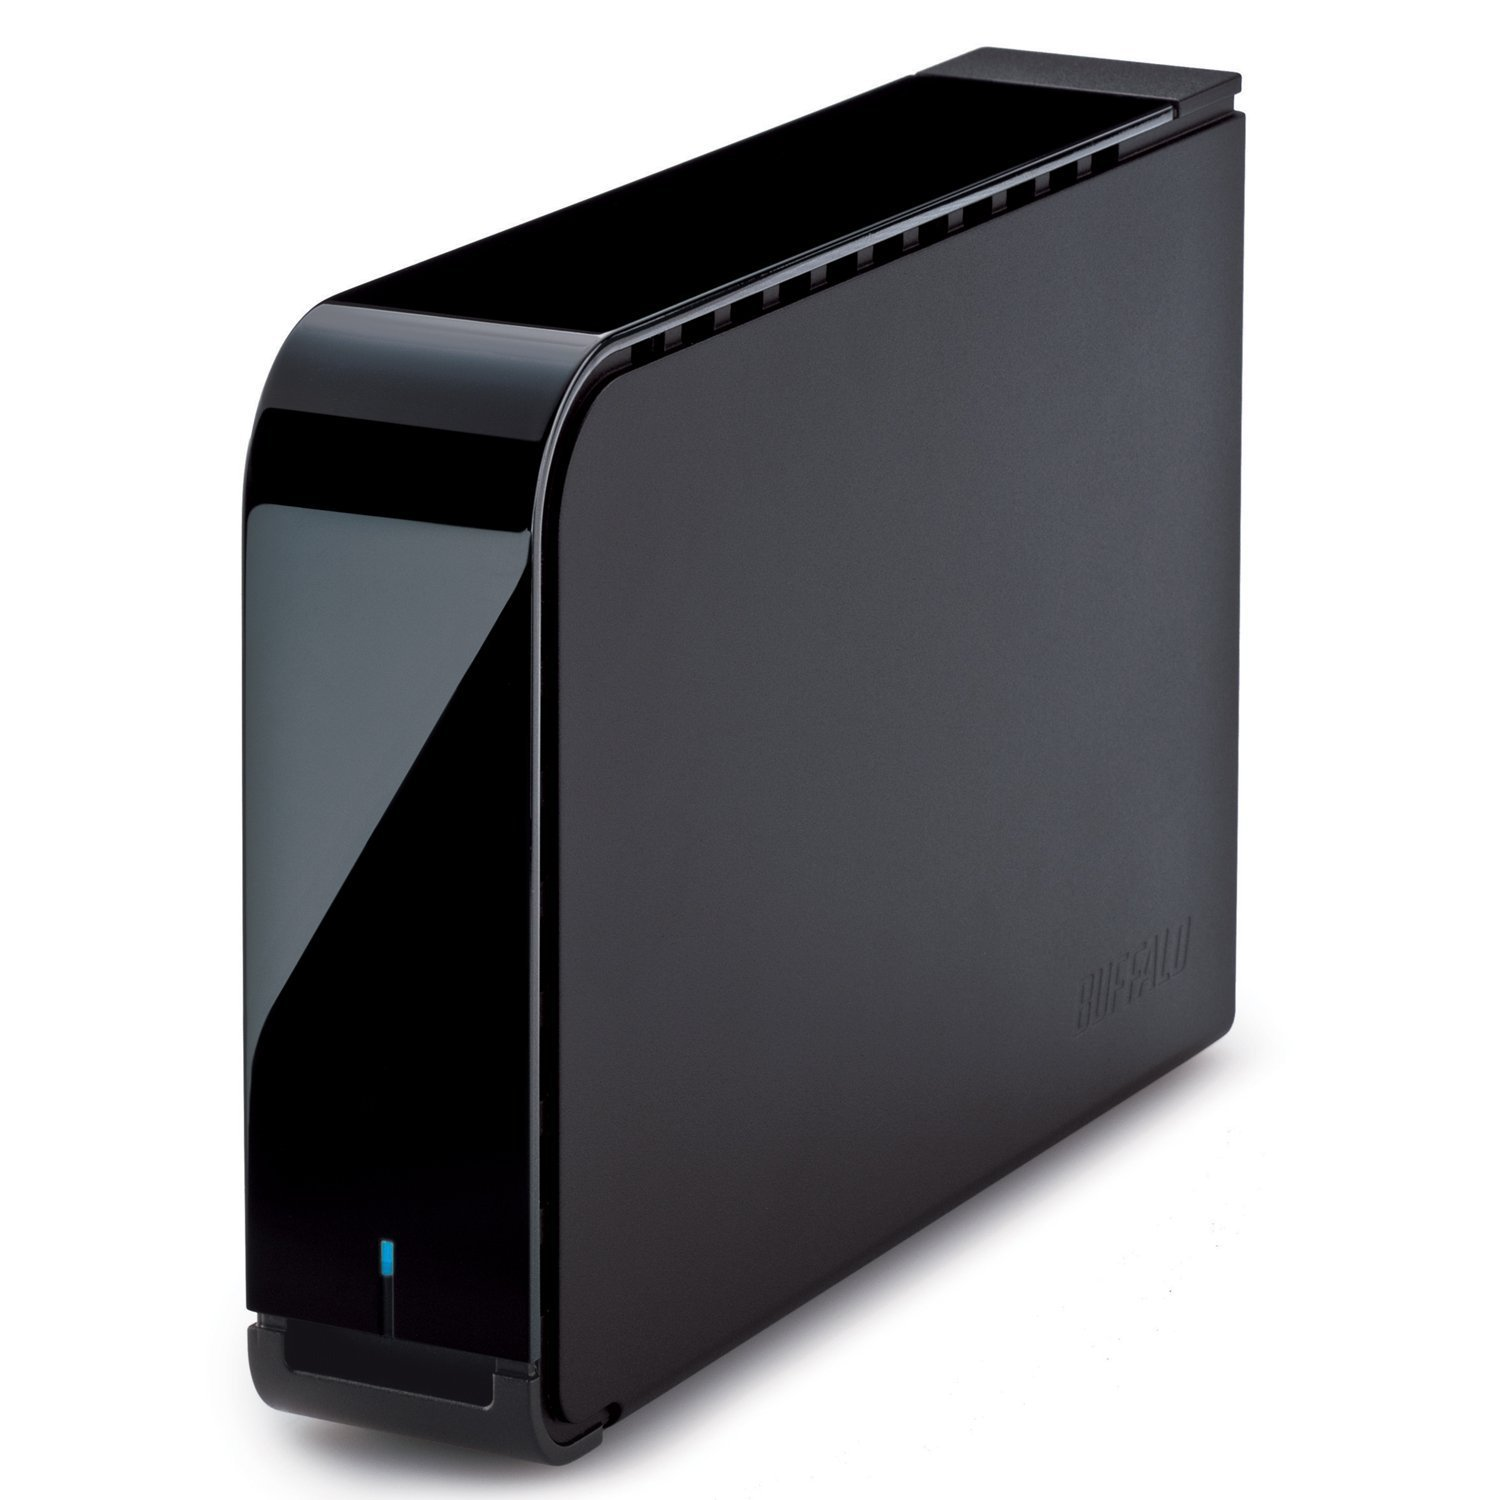 Buffalo DriveStation Axis Velocity High Speed External Hard Drive 3 TB